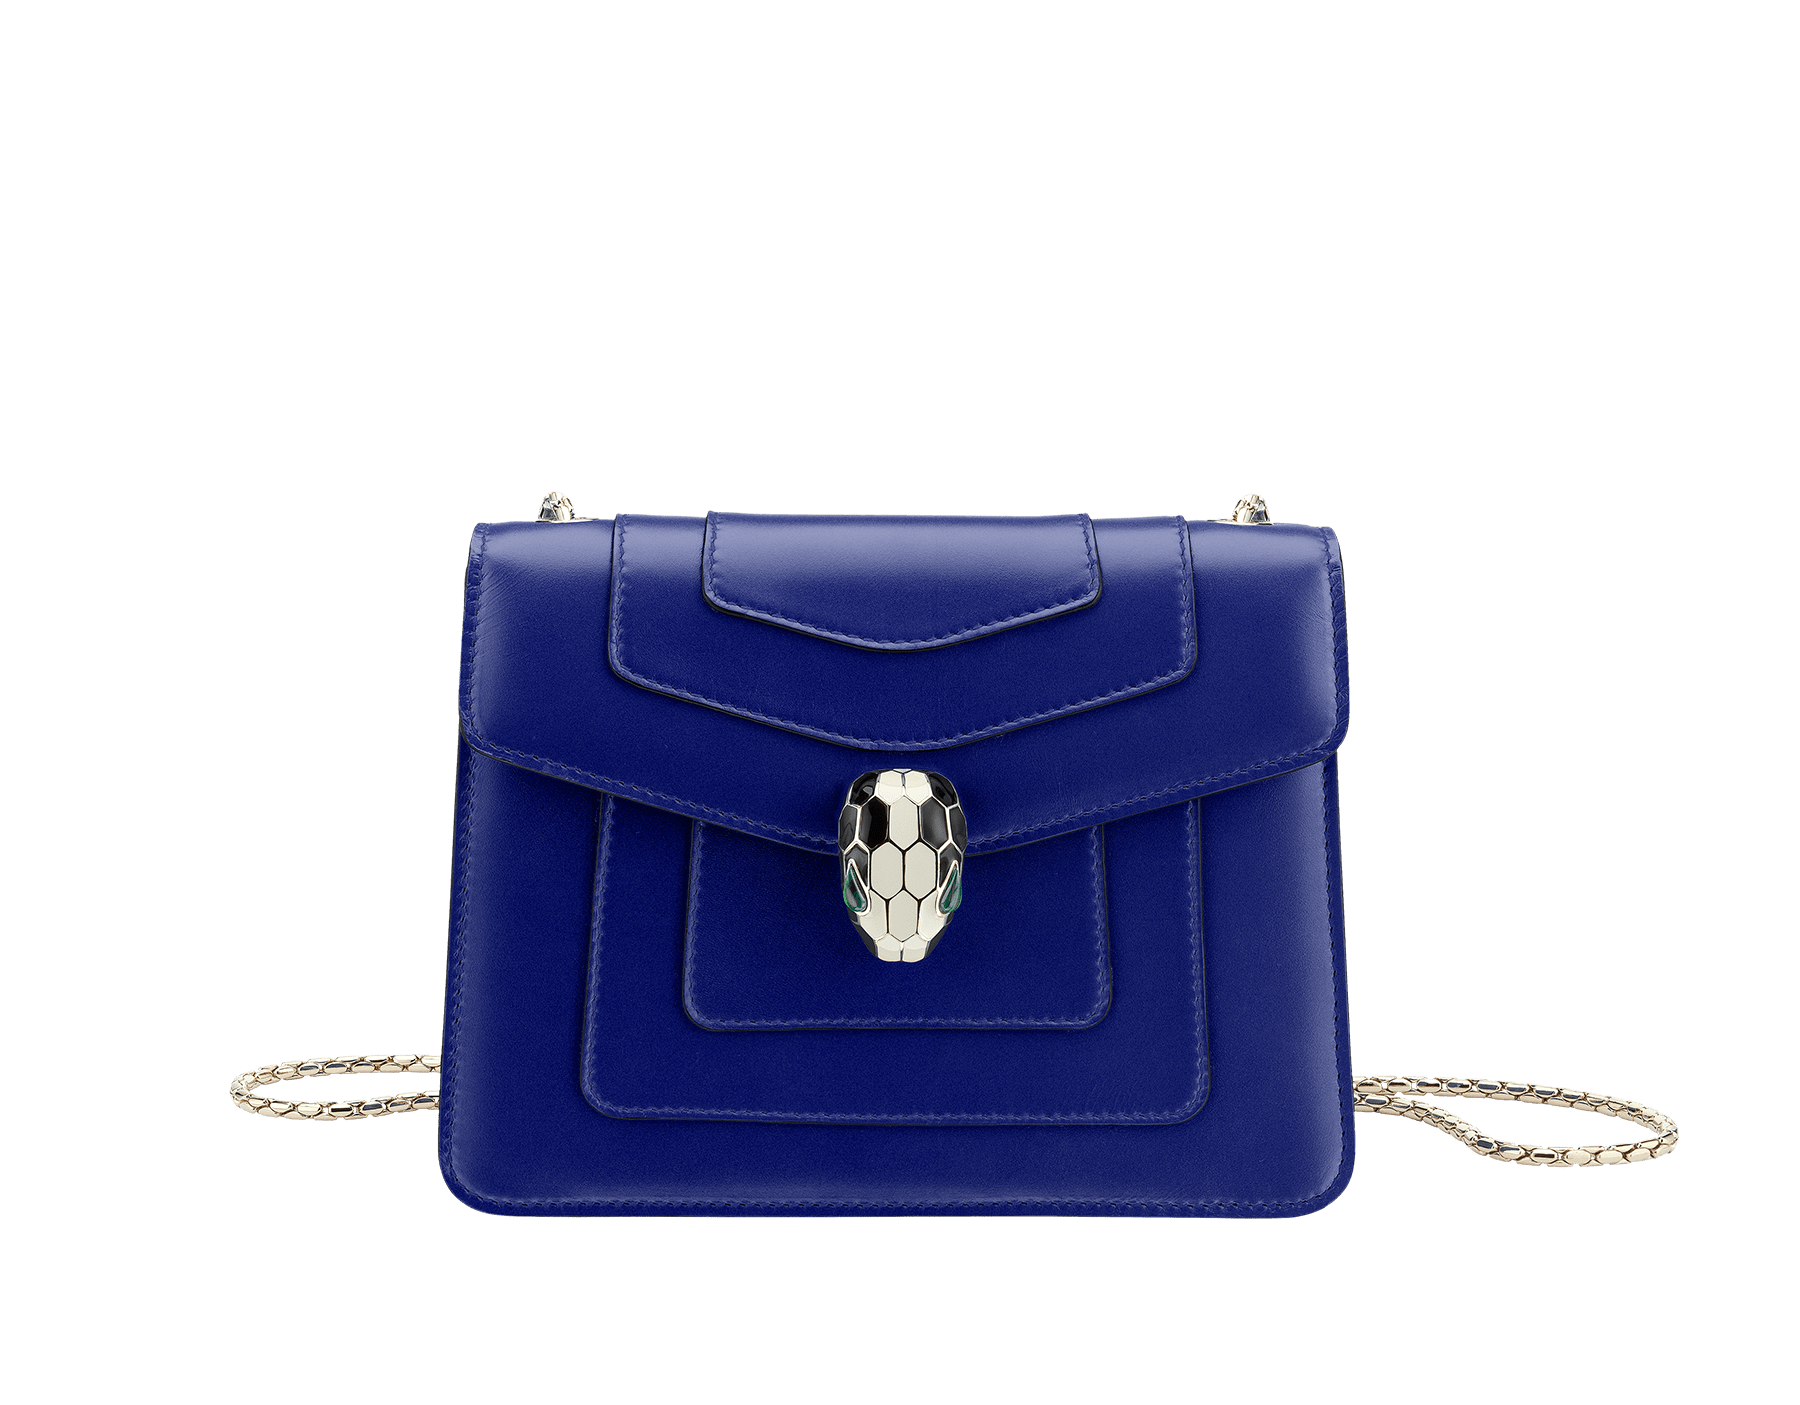 Flap cover bag Serpenti Forever in royal sapphire calf leather. Brass light gold plated snake head closure in black and white enamel with eyes in green malachite. 281225 image 1